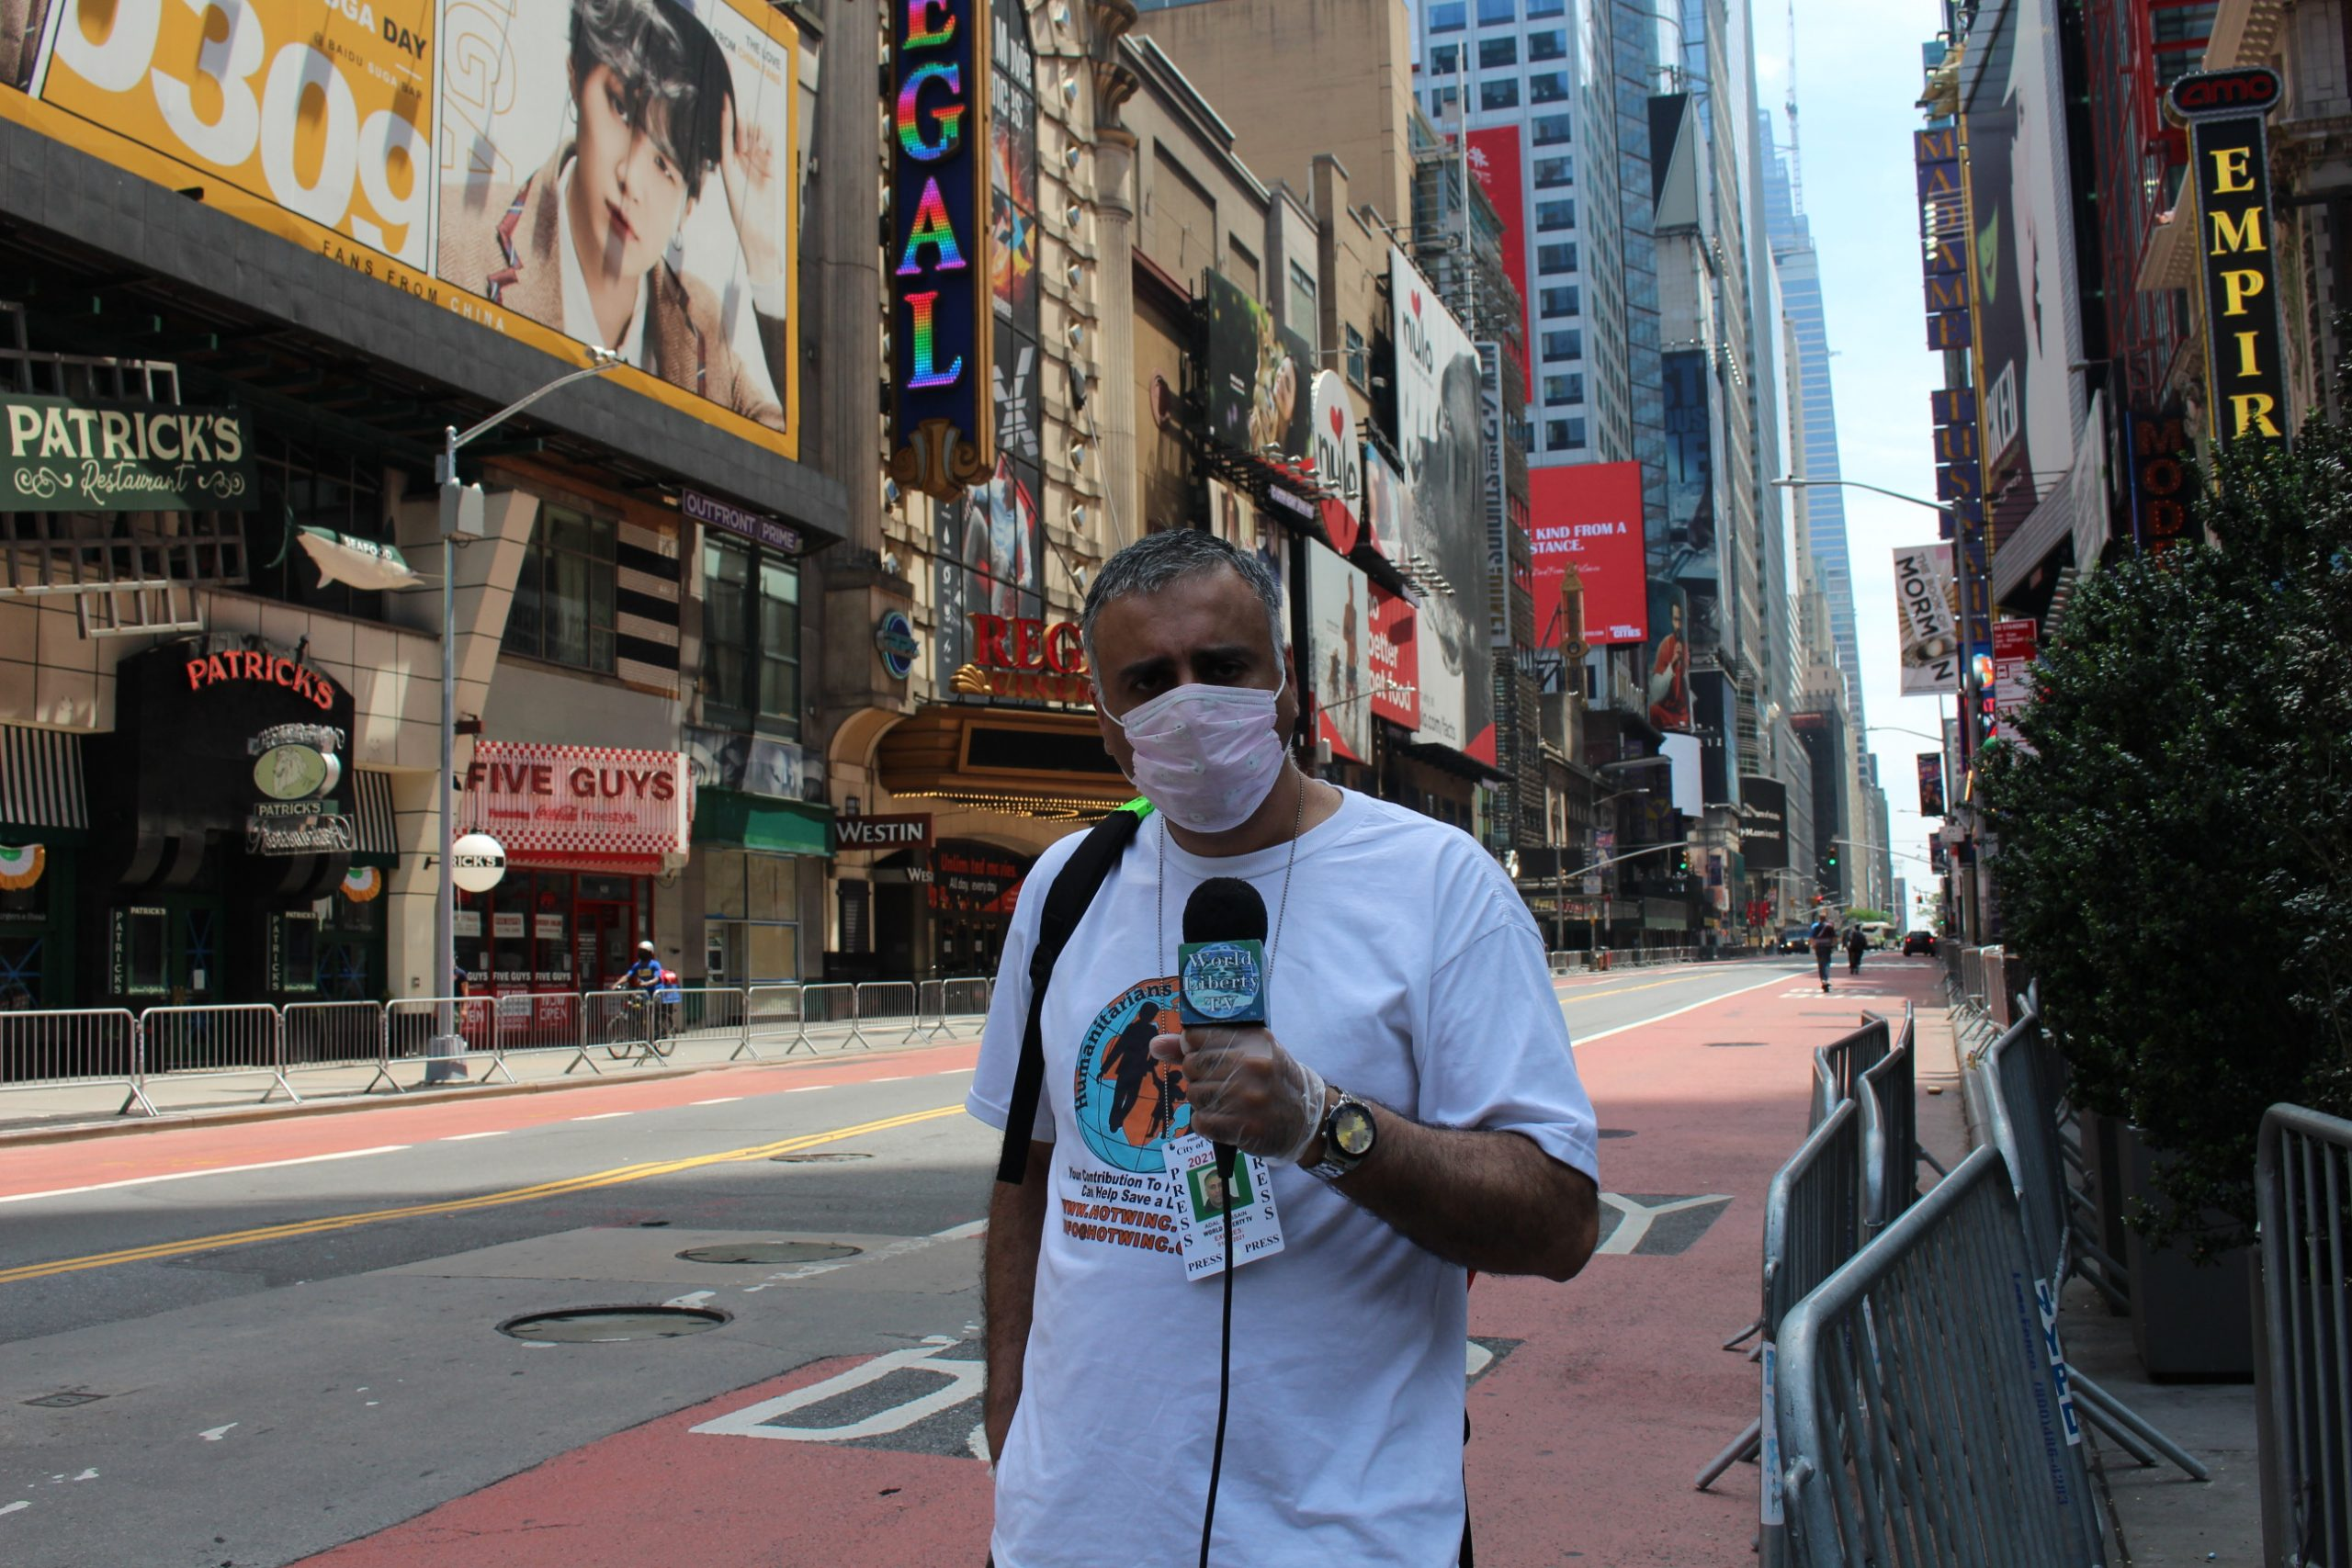 Dr Abbey Bringing Live News on WLTV During George Floyd Protests in Times Square NYC